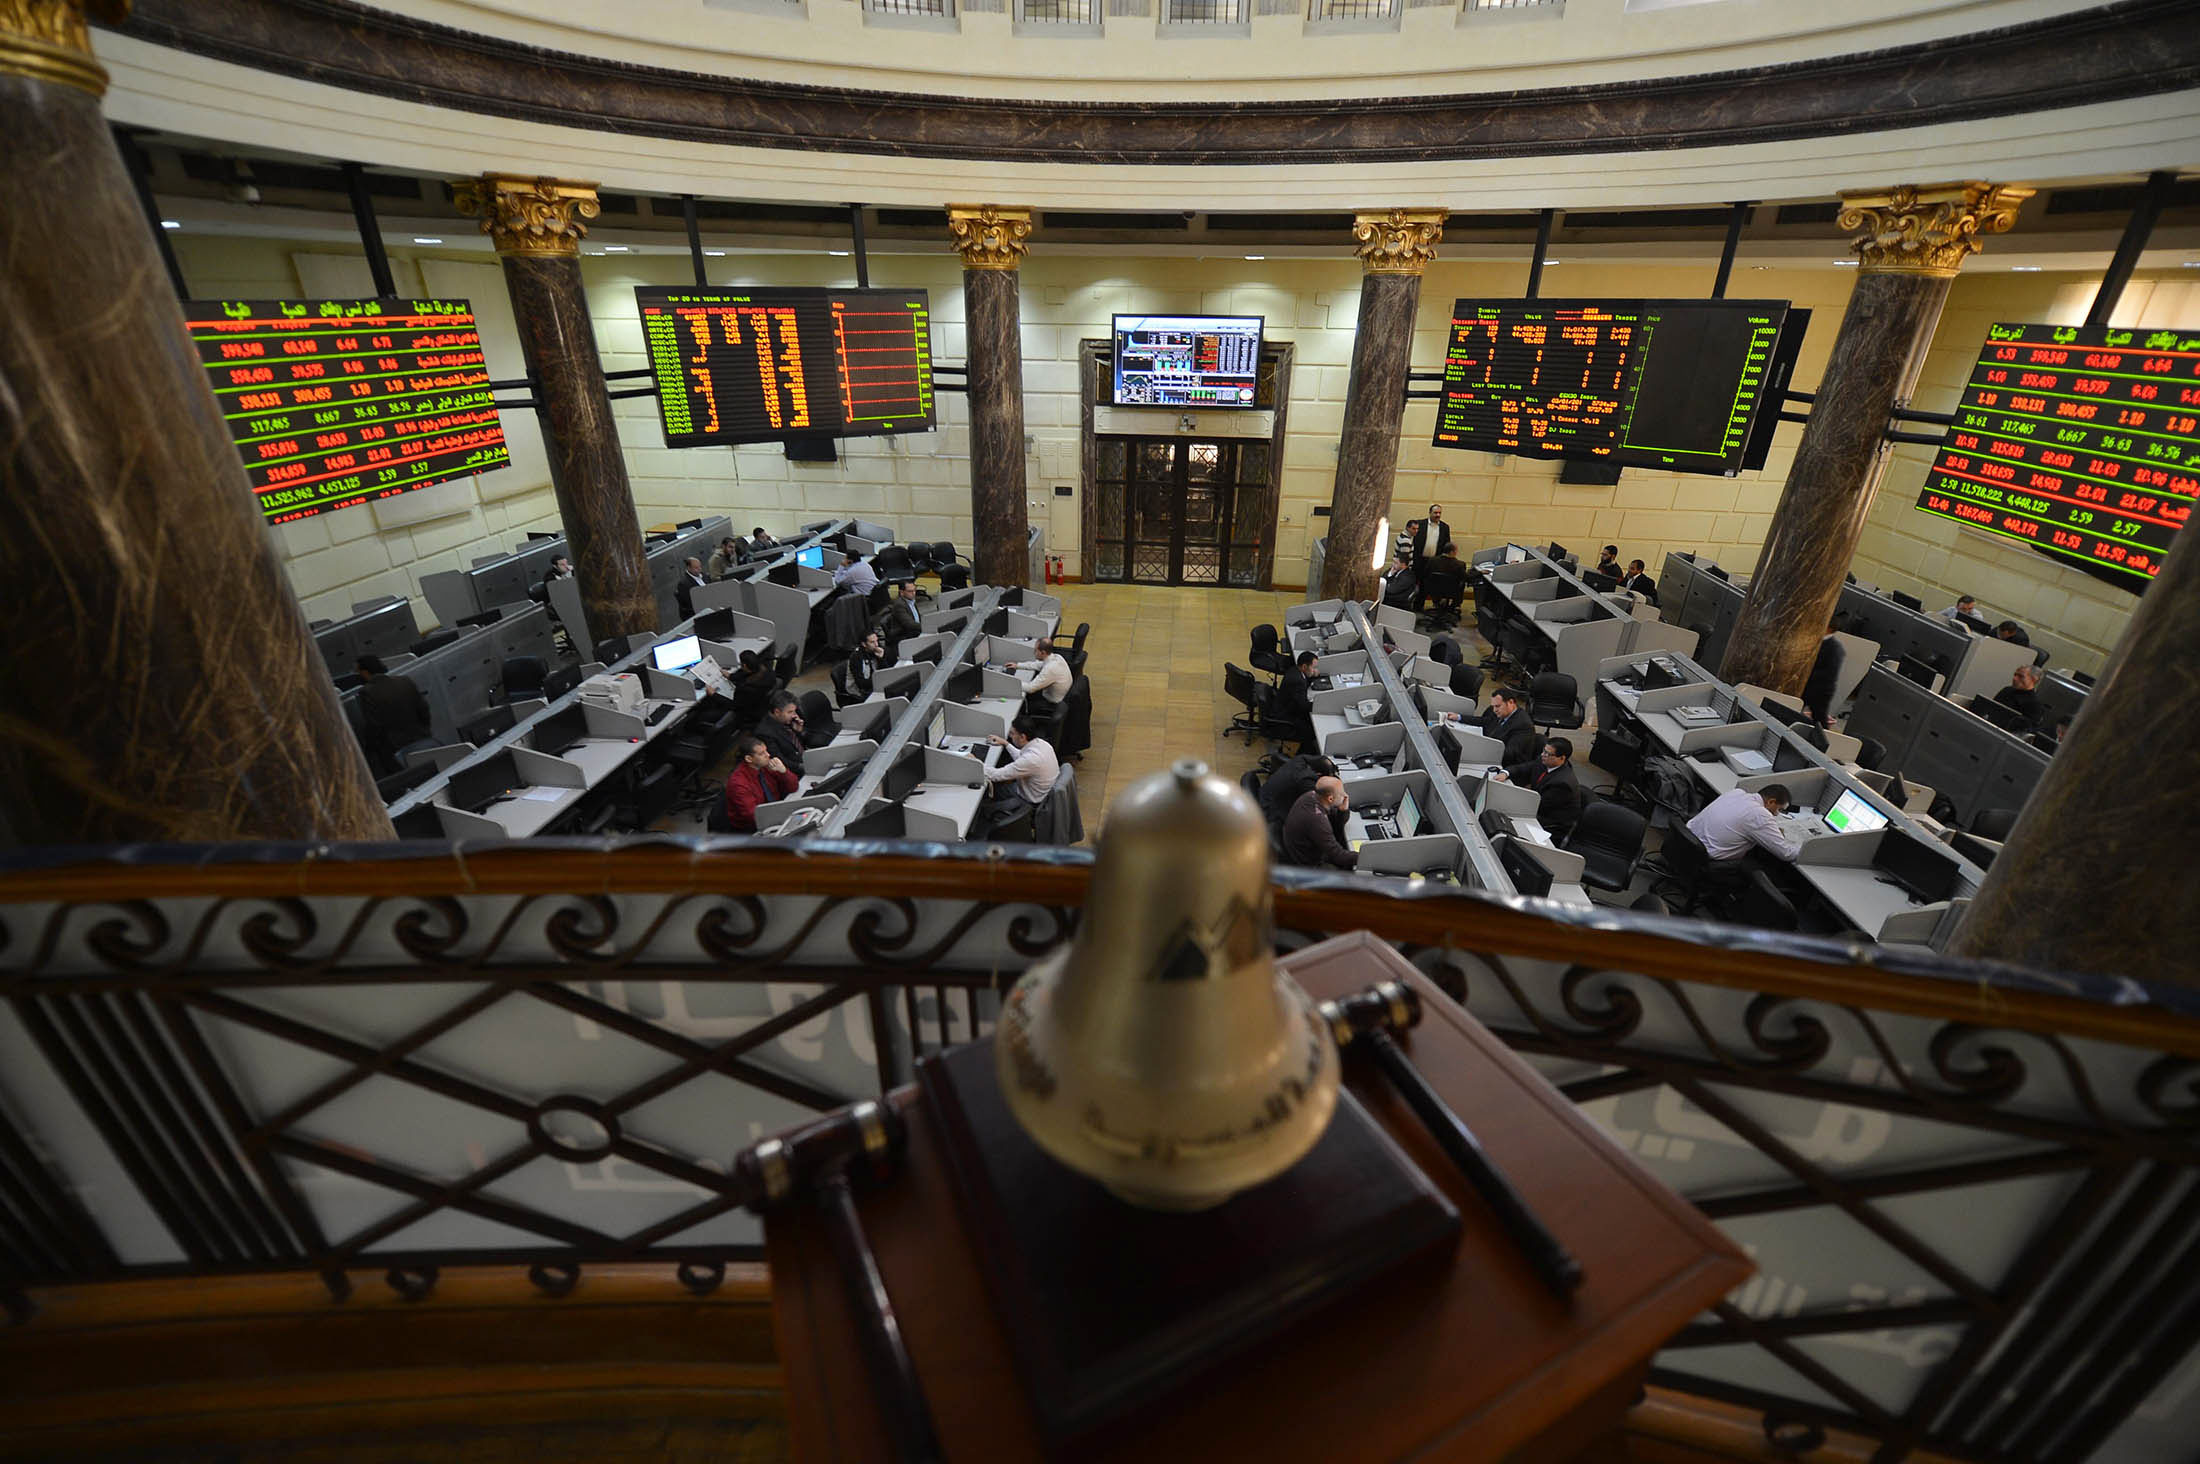 Egypt's Military Companies Aren't Going Anywhere - Bloomberg